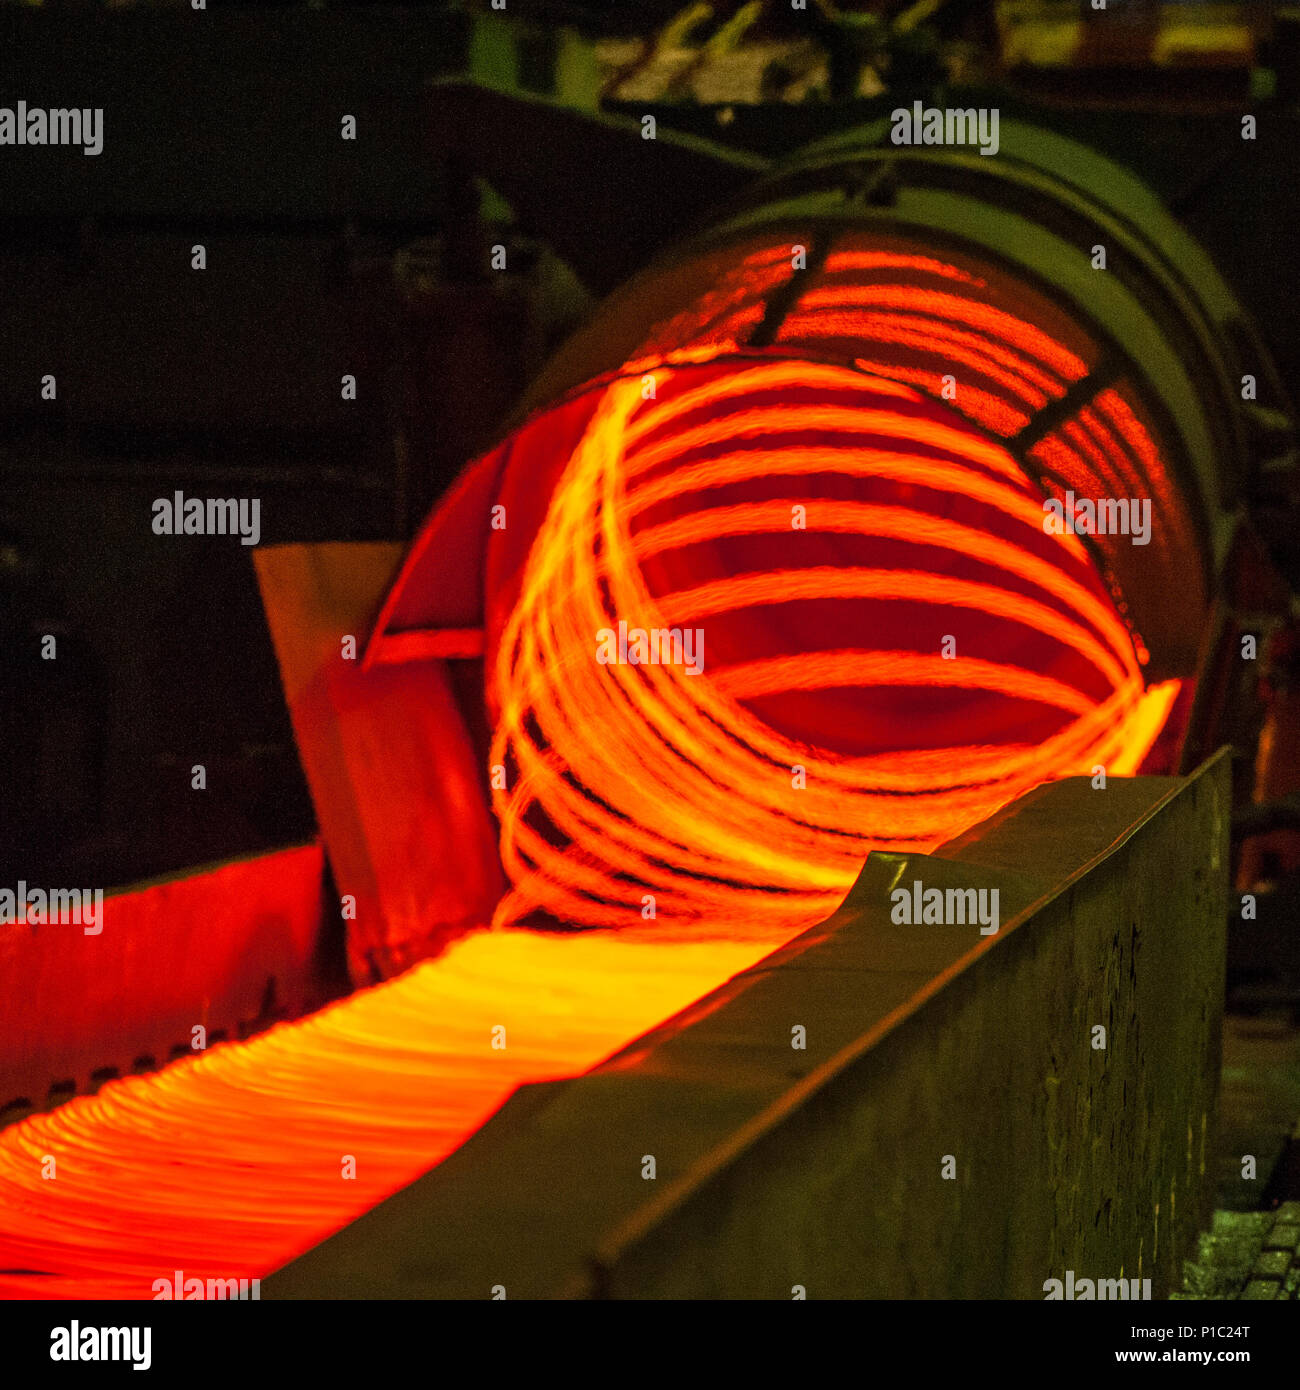 Iron Casting Works Stock Photos Images Wiring Telford Manufacturing Wire Steel And Metallurgical Plant Continuous Production